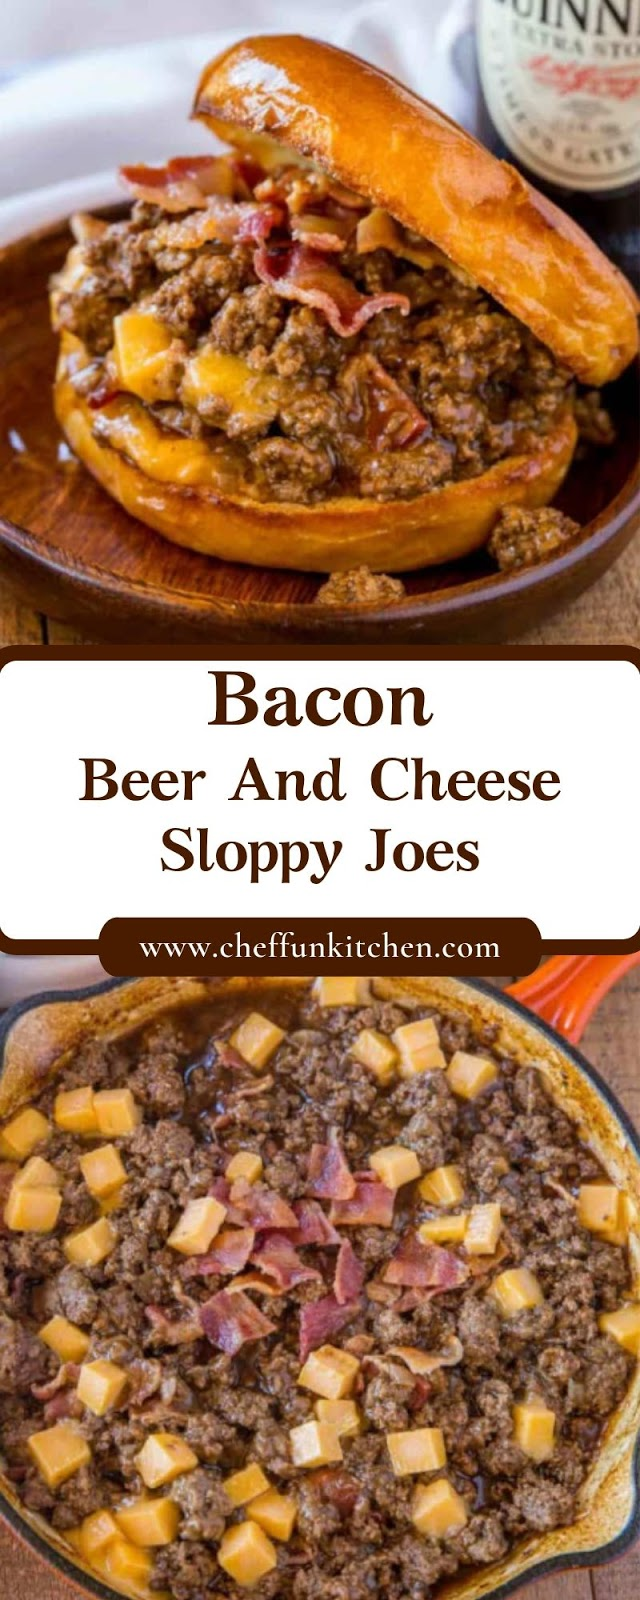 Bacon, Beer And Cheese Sloppy Joes